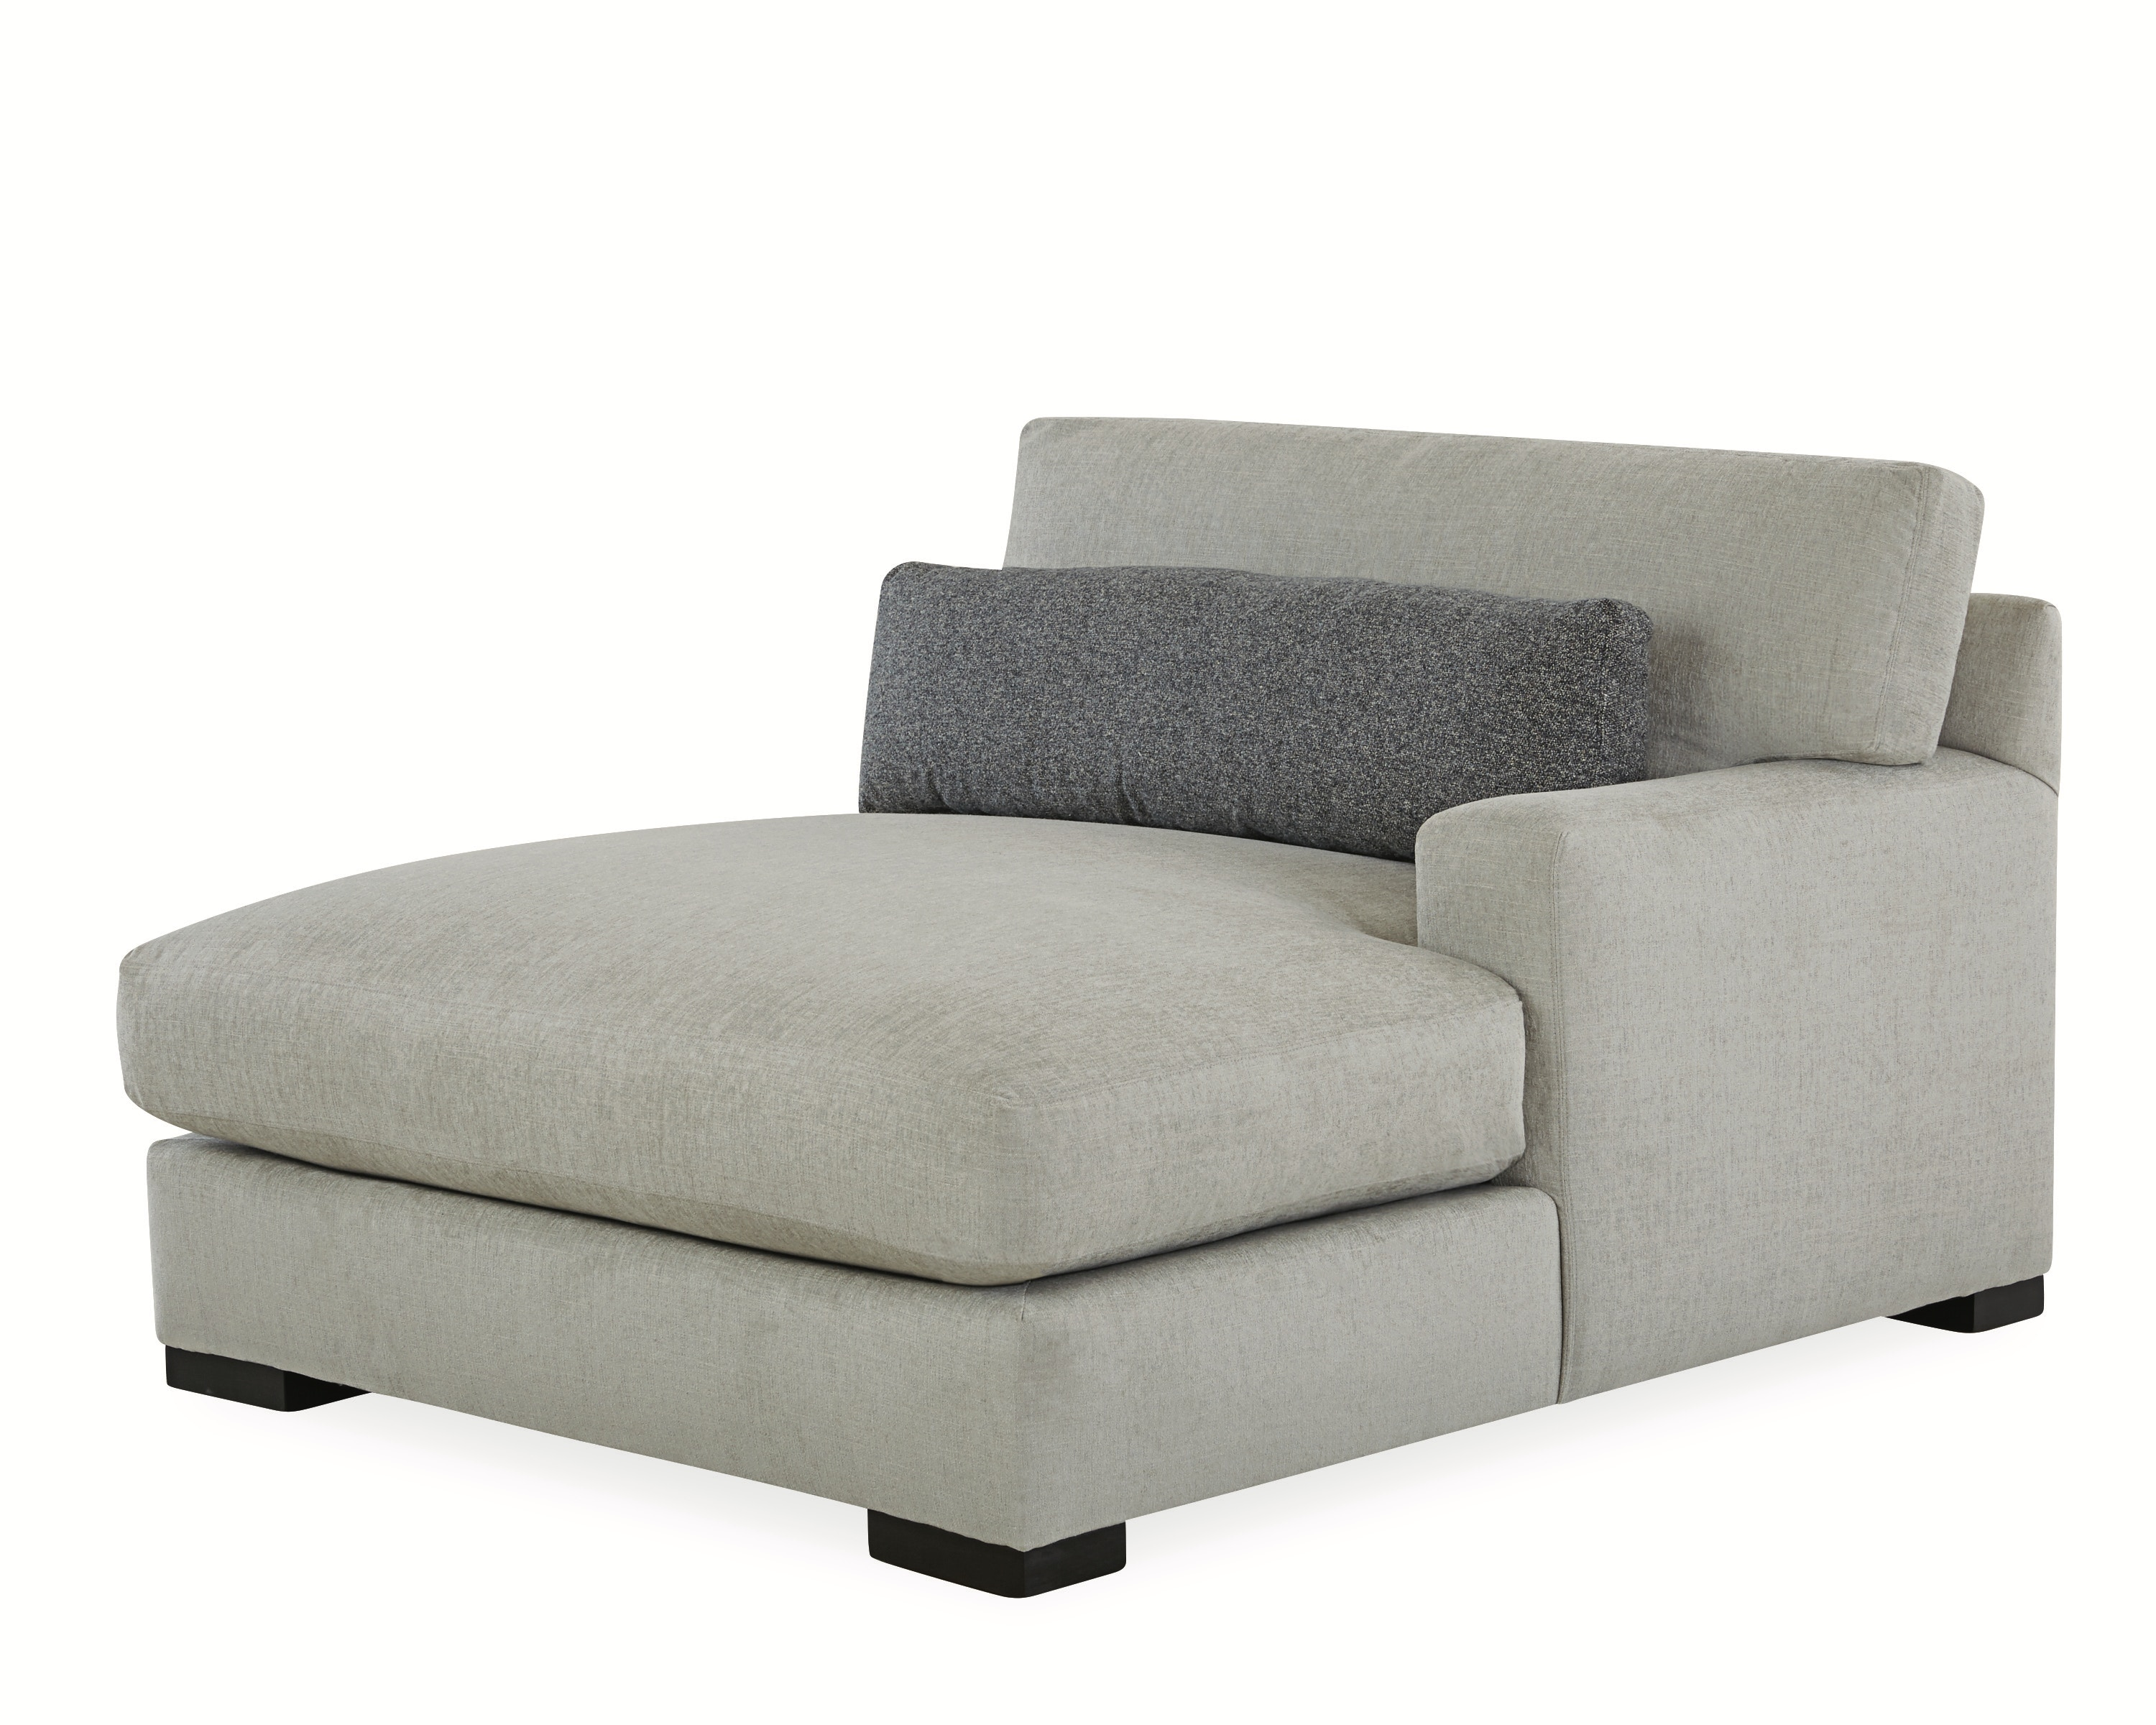 Lee Industries One Arm Chaise 7822 85RF